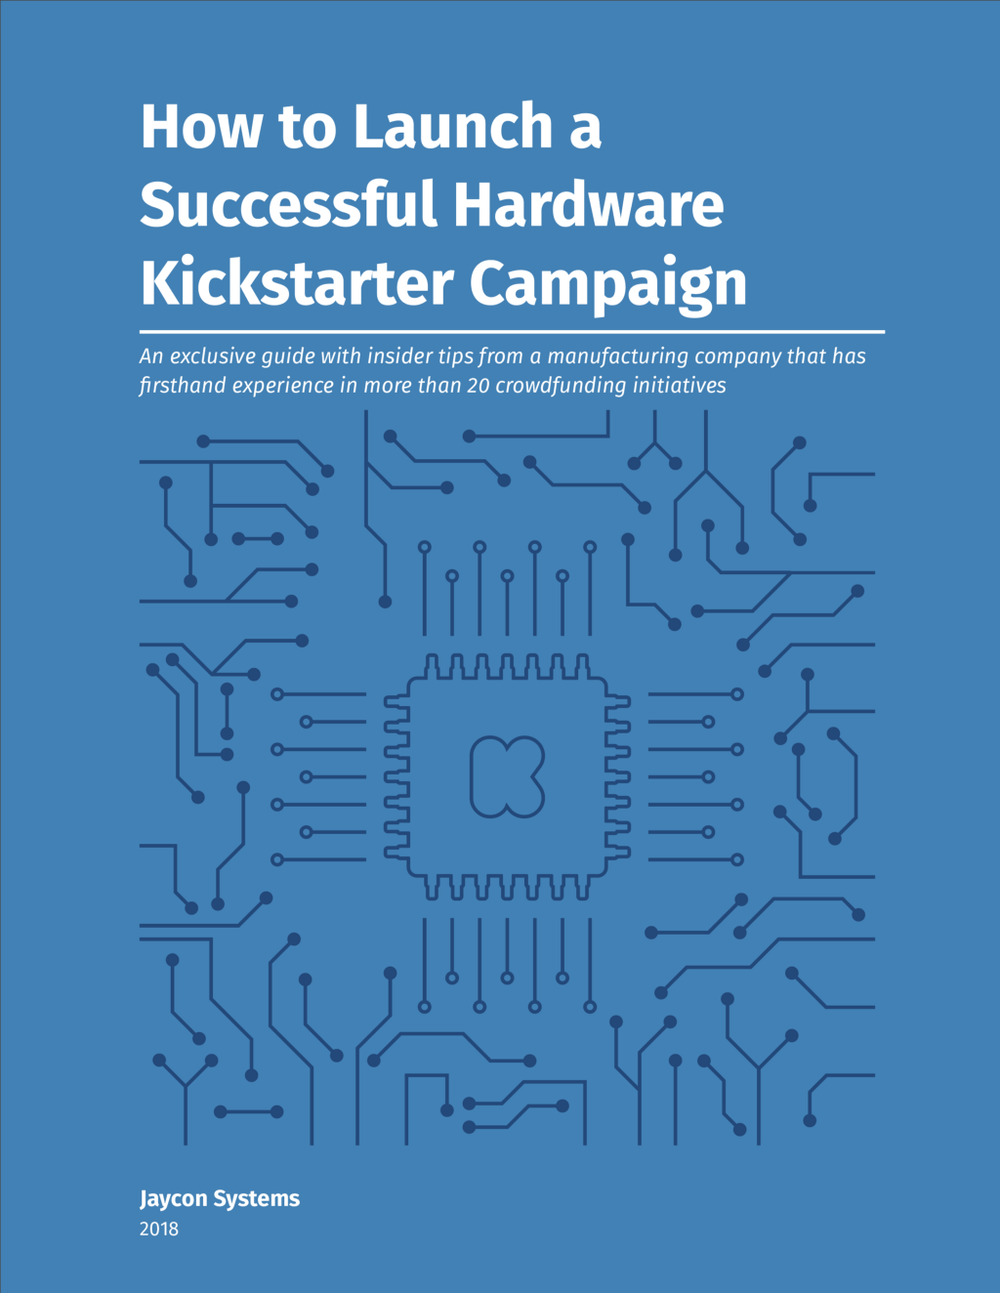 Be sure to download the    How to Launch a Successful Hardware Kickstarter Campaign   PDF here .